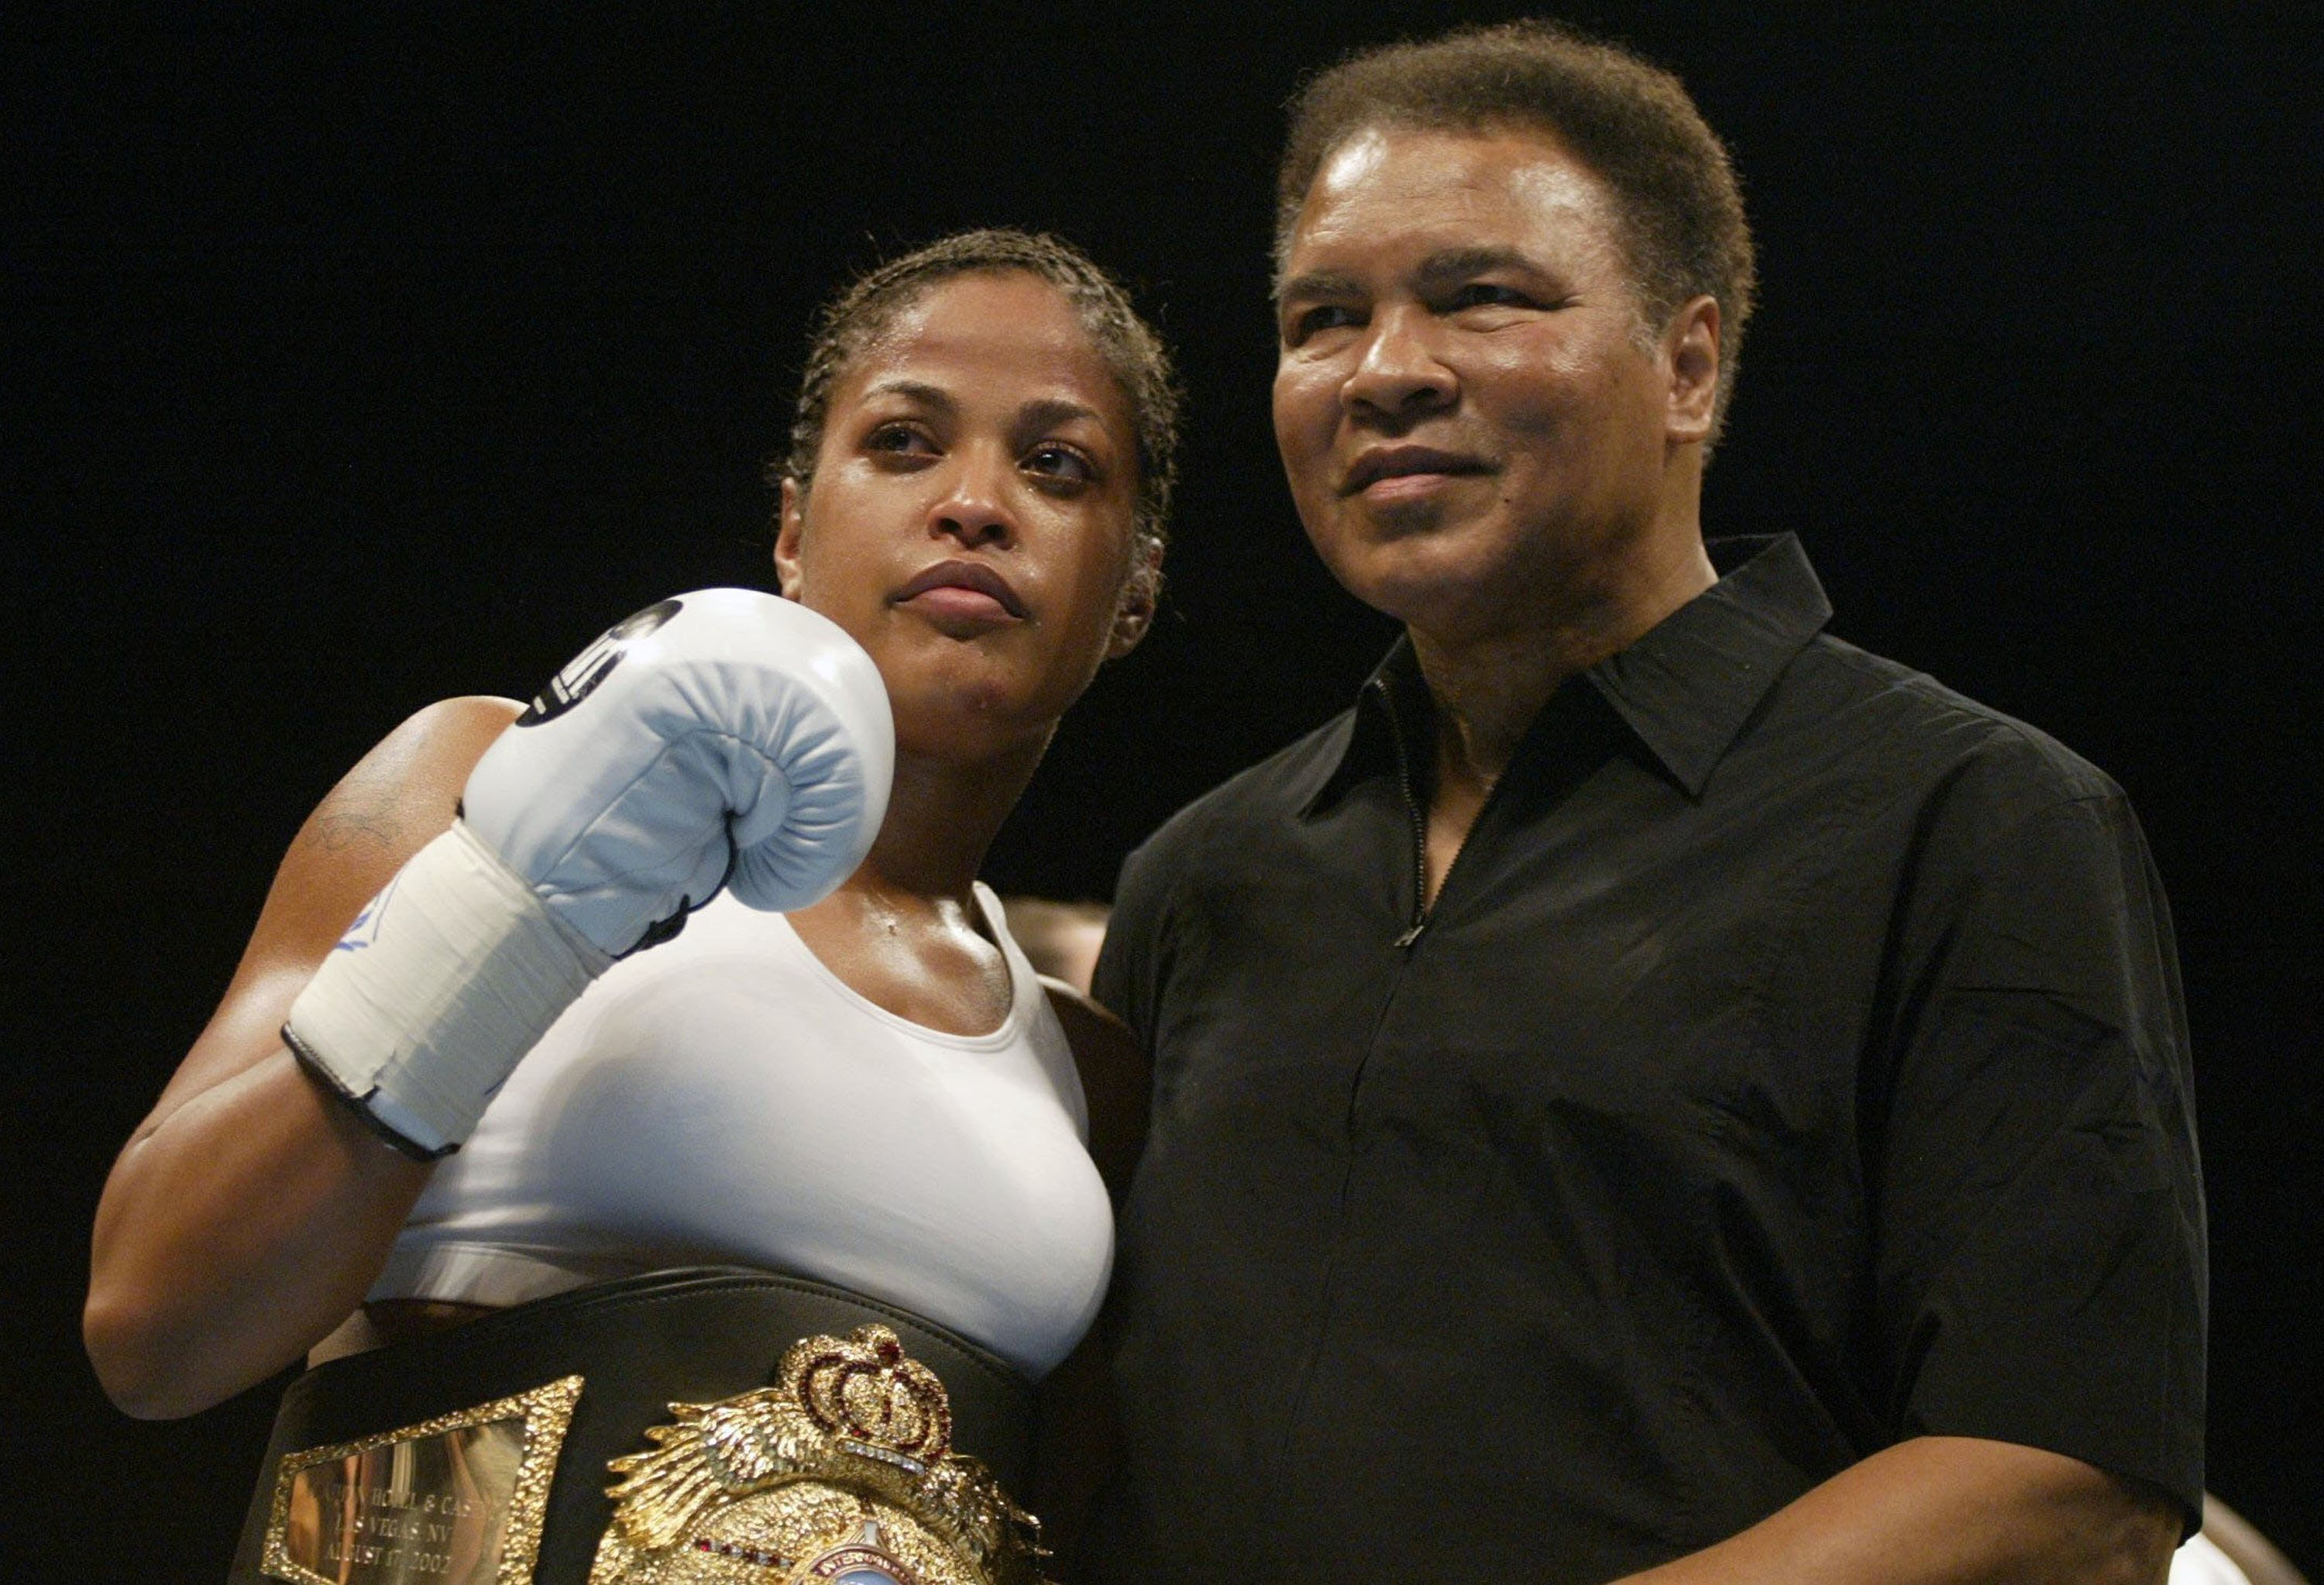 Laila Ali poses with her father, former boxer, Muhammad Ali, after defeating Suzy Taylor after two rounds at the Aladdin Casino on August 17, 2002 | Photo: Getty Images